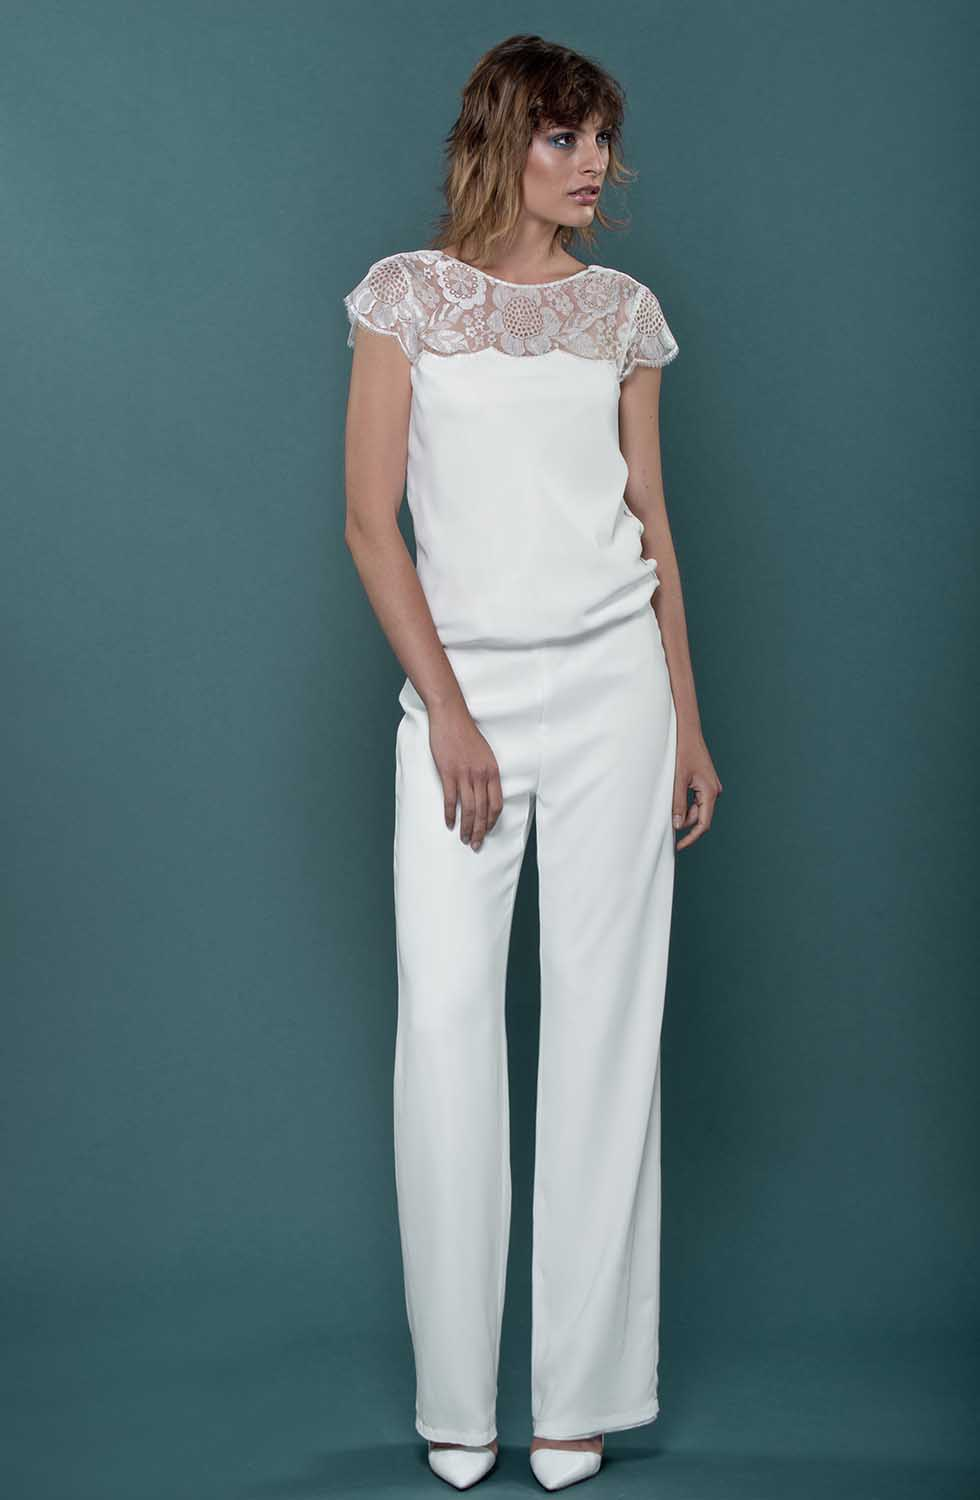 Hilde1_1_Braut_Jumpsuit_Spitze_Georgette_therese&luise